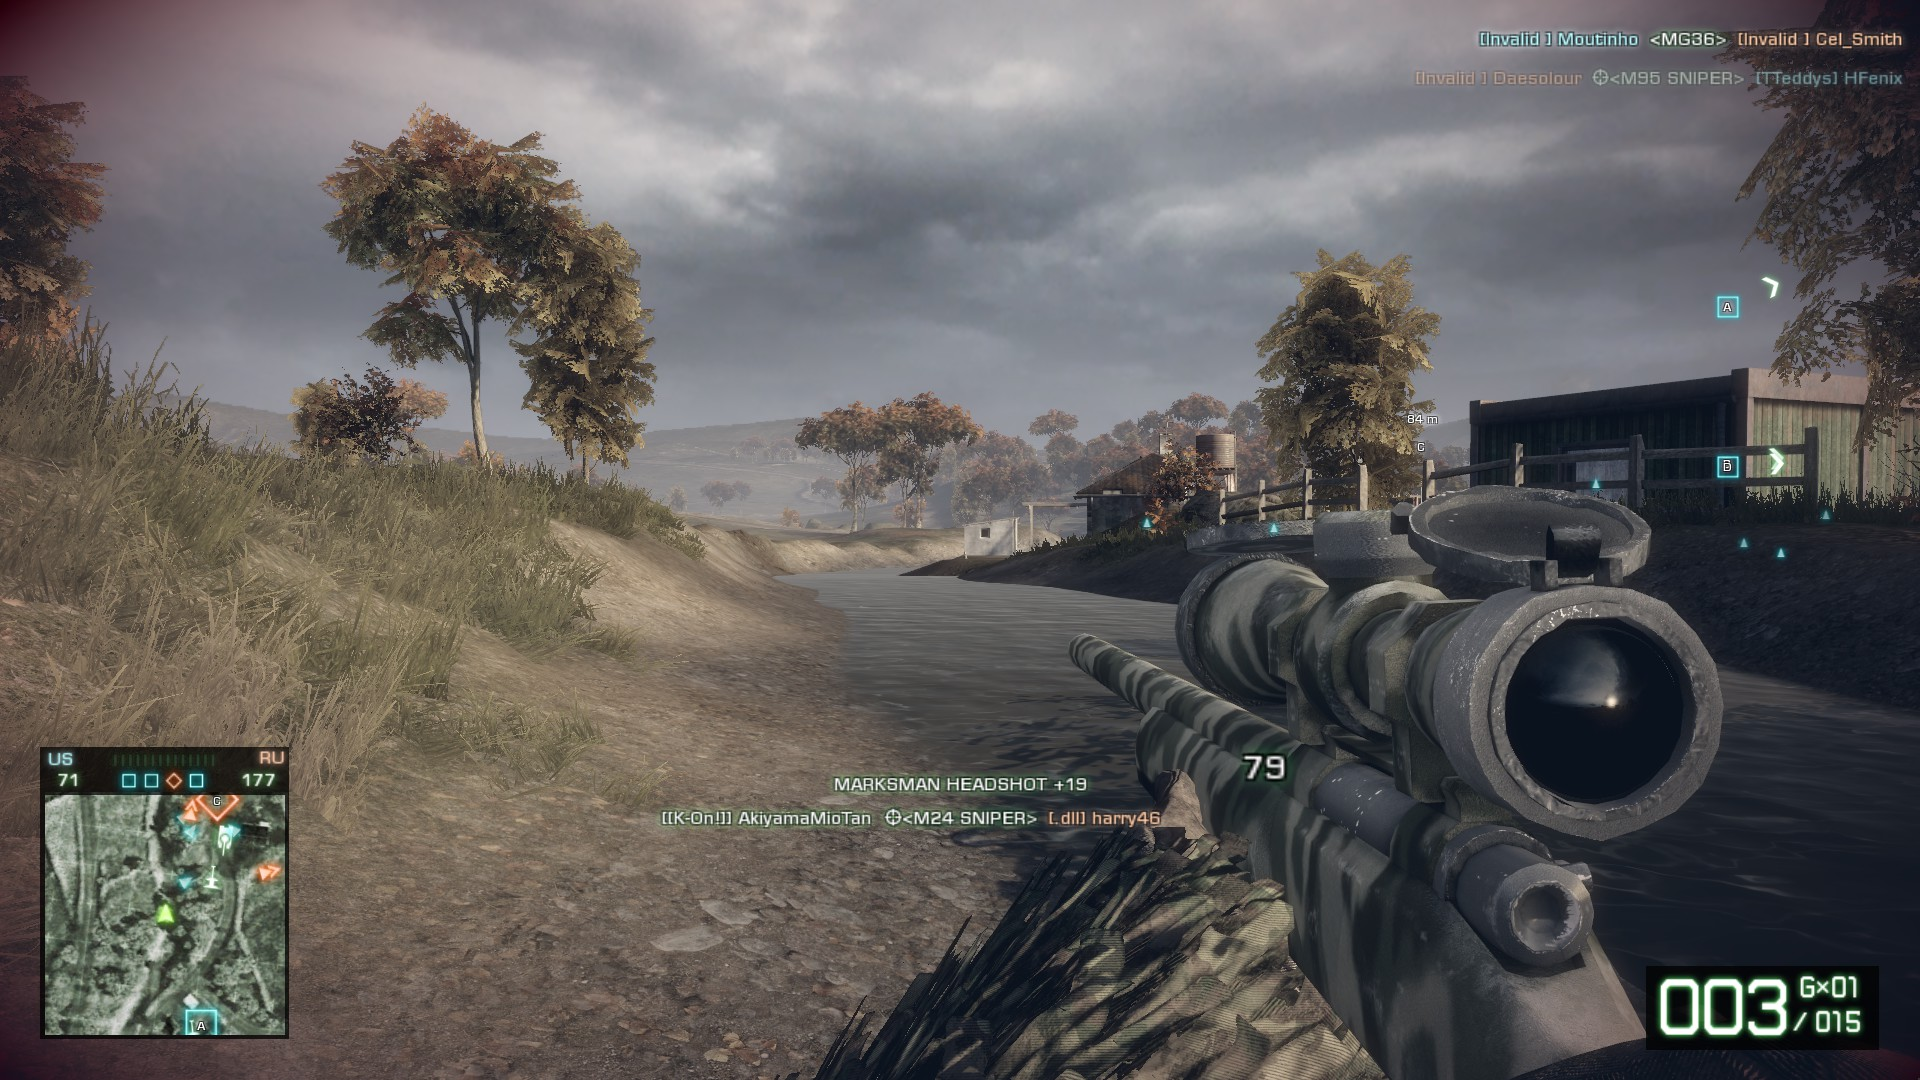 battlefield bad company 2 the infinite zenith